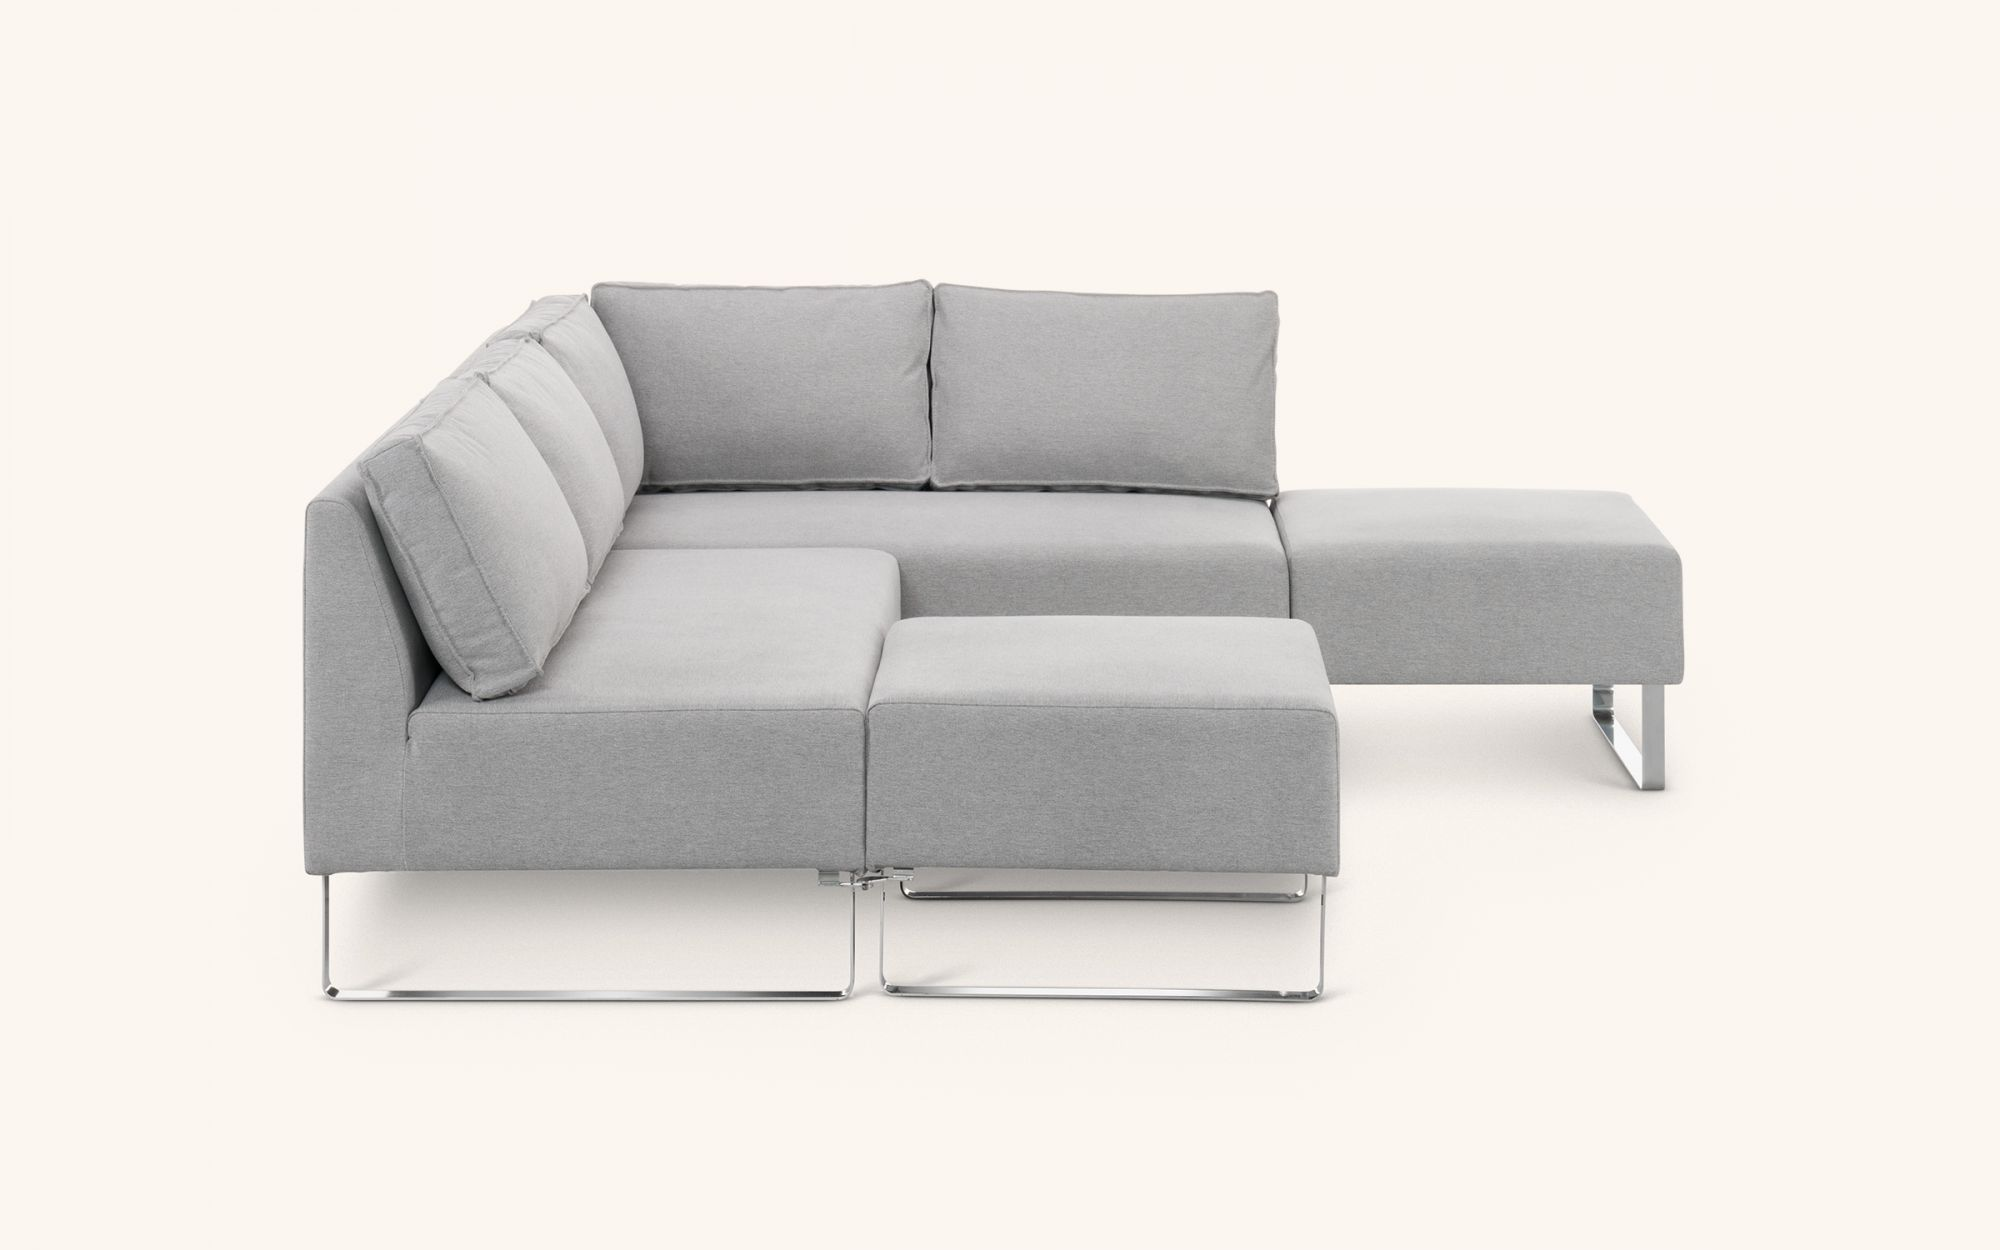 Awa Sofabed - grey front view